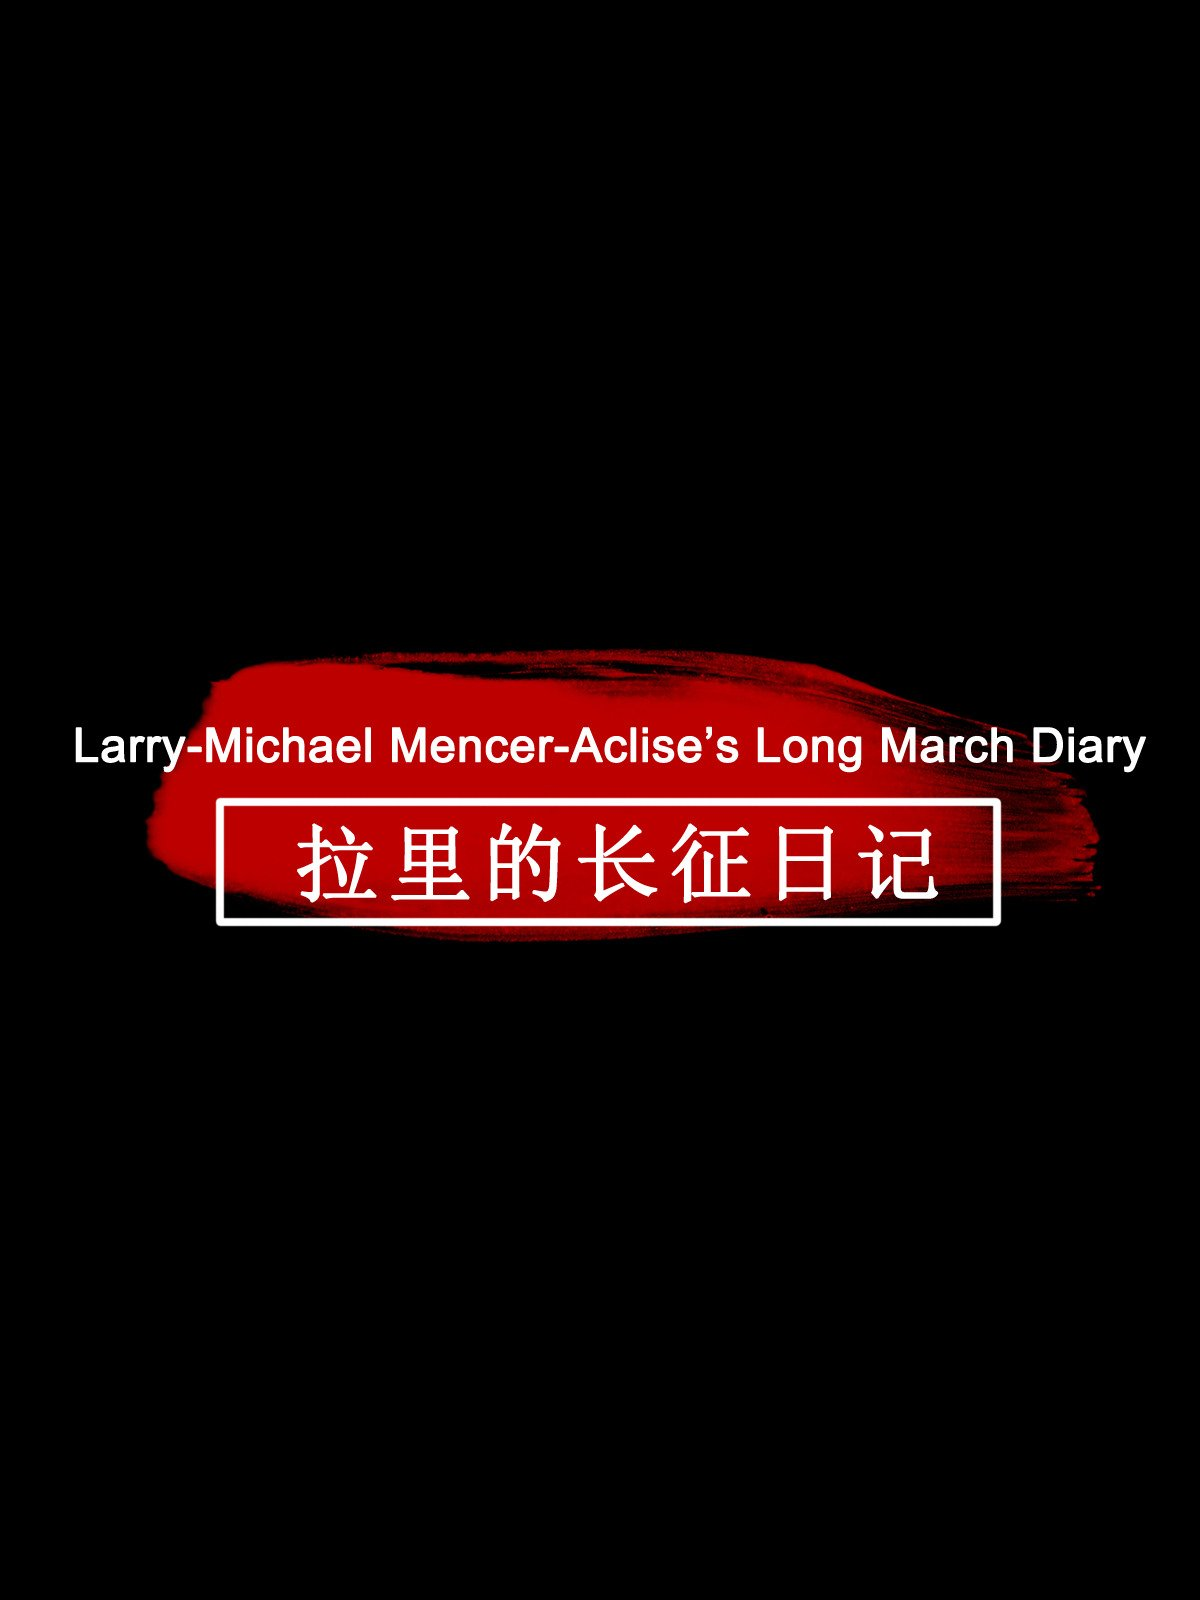 Larry-Michael Mencer-Aclise's Long March Diary